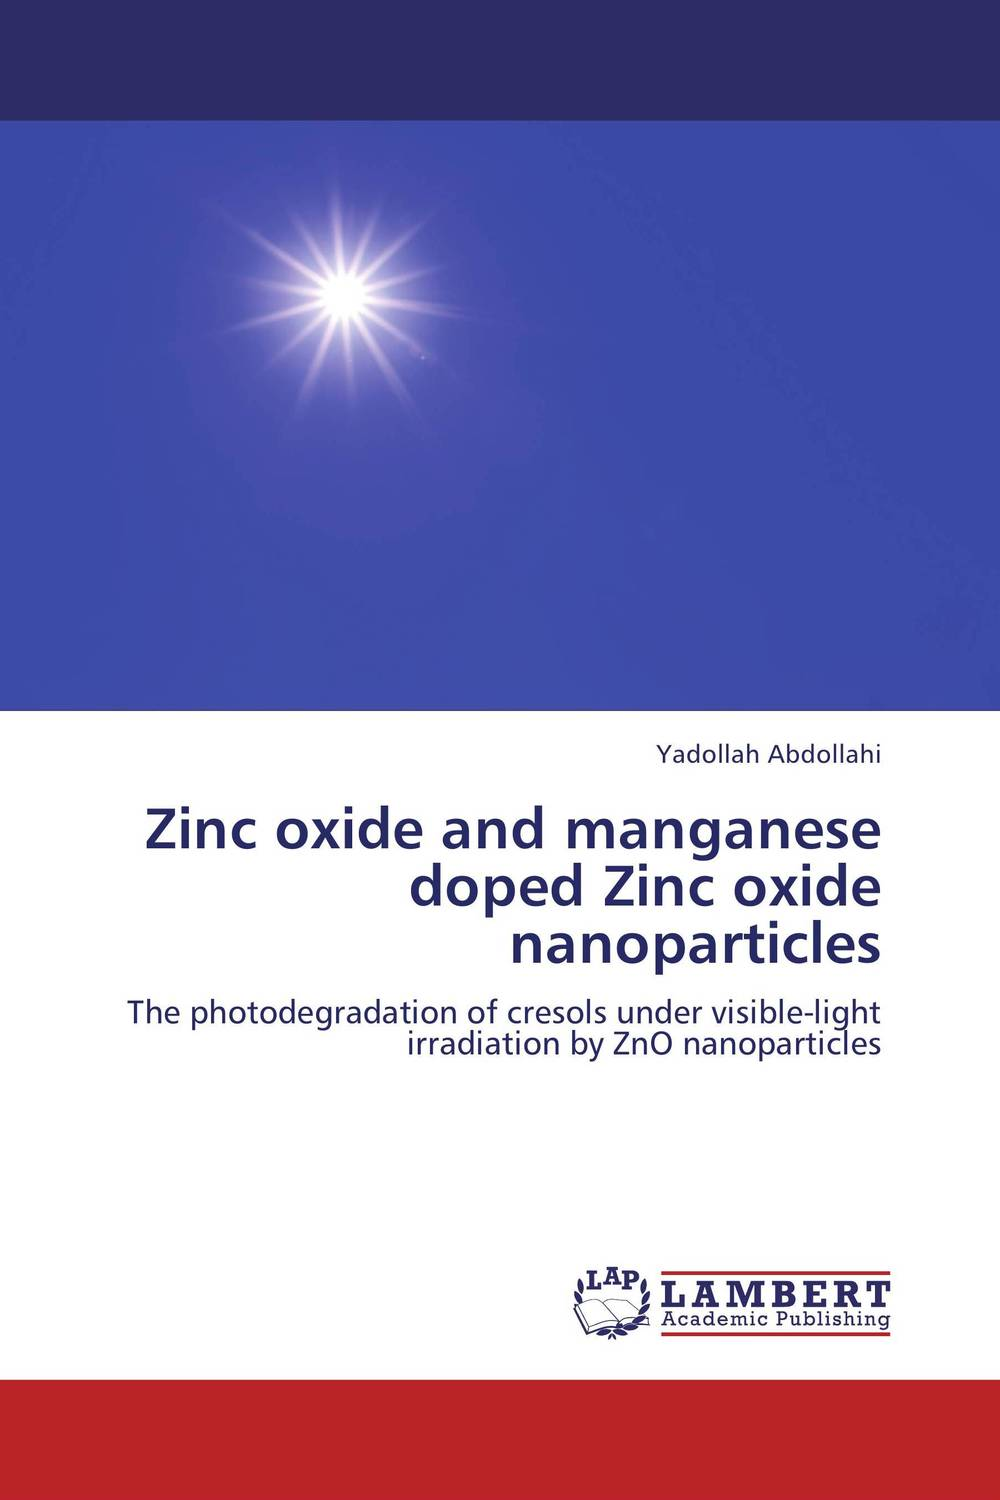 Zinc oxide and manganese doped Zinc oxide nanoparticles zinc oxide and manganese doped zinc oxide nanoparticles